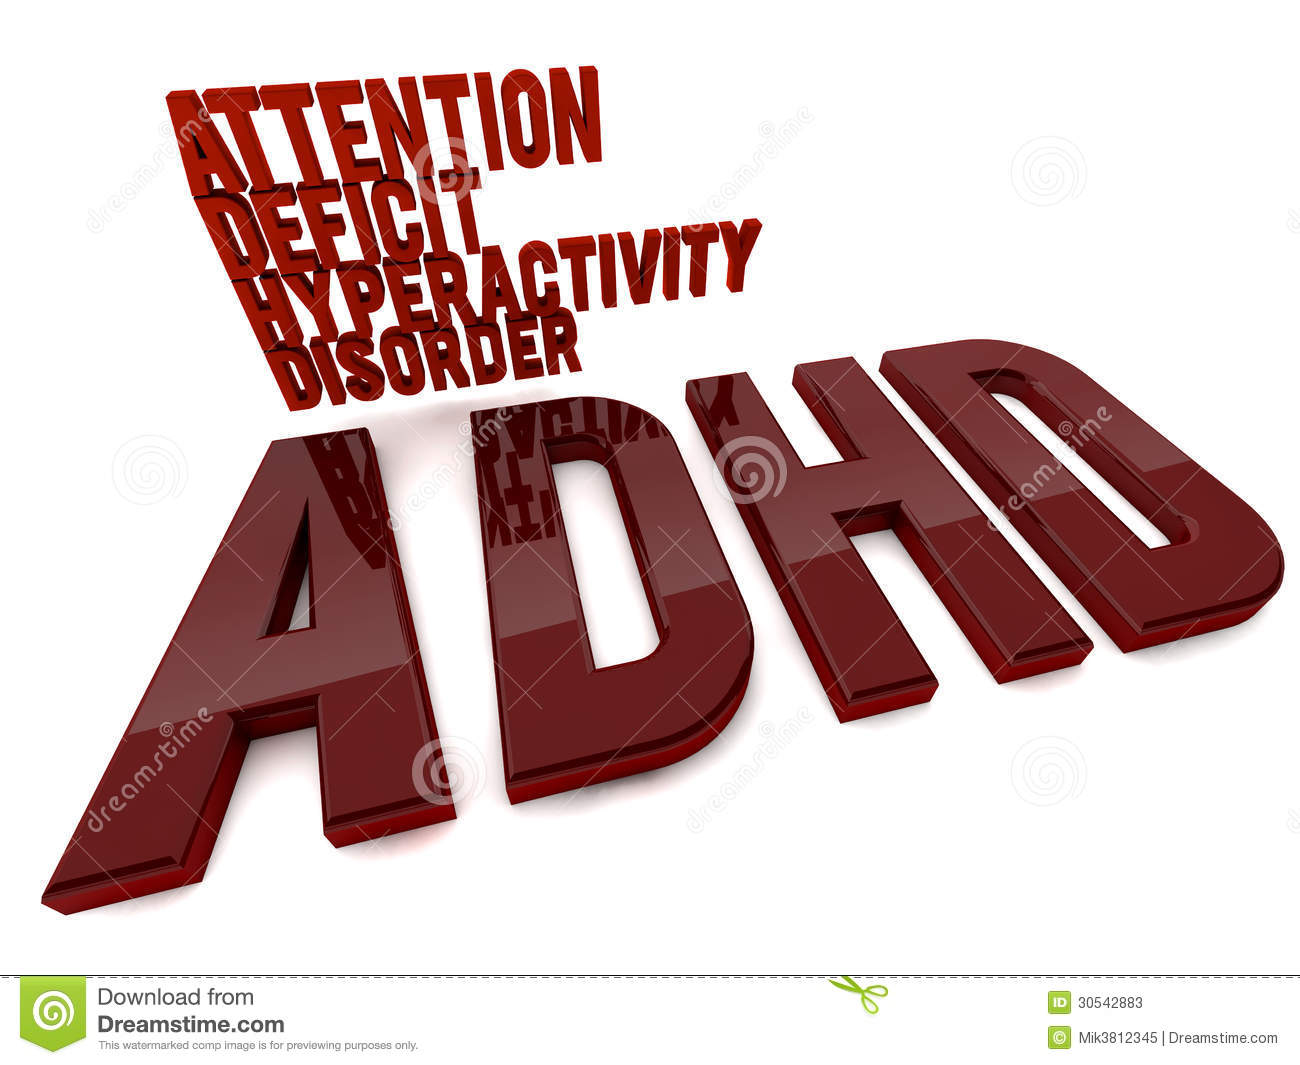 a discussion on the attention deficcit hyperactivity disorder